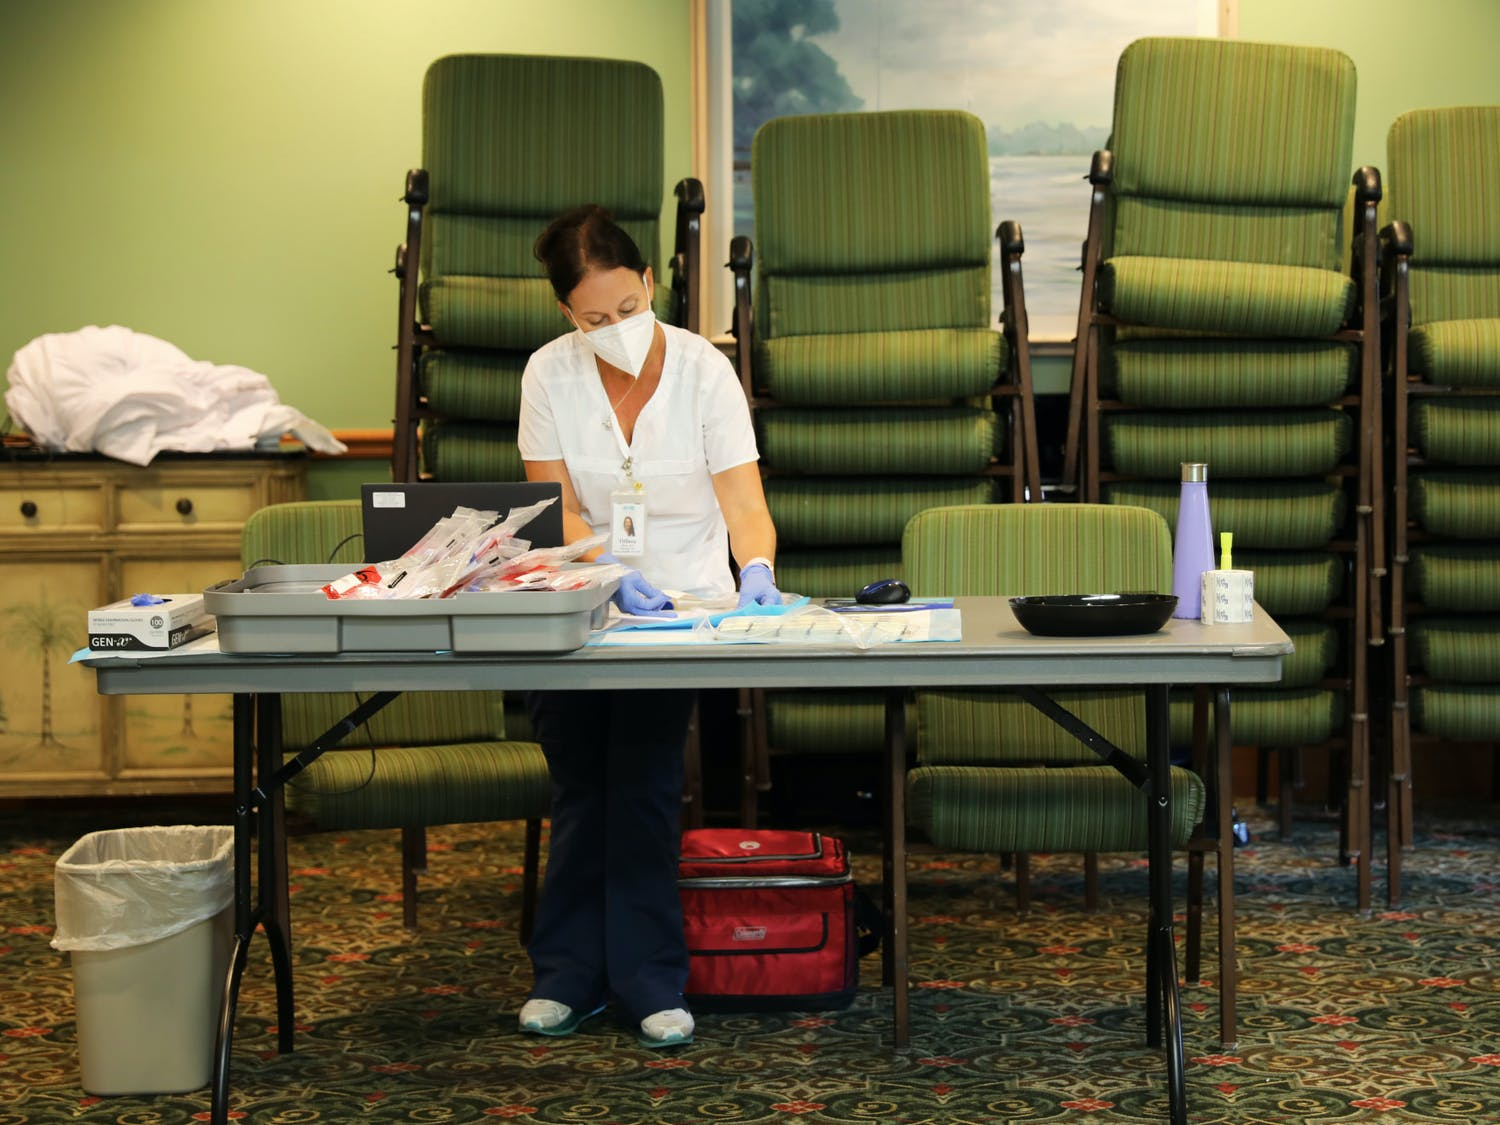 Tiffany Bach, the manager of the CITRUS Study, arranges files after collecting blood samples on Wednesday, June 9, 2021.